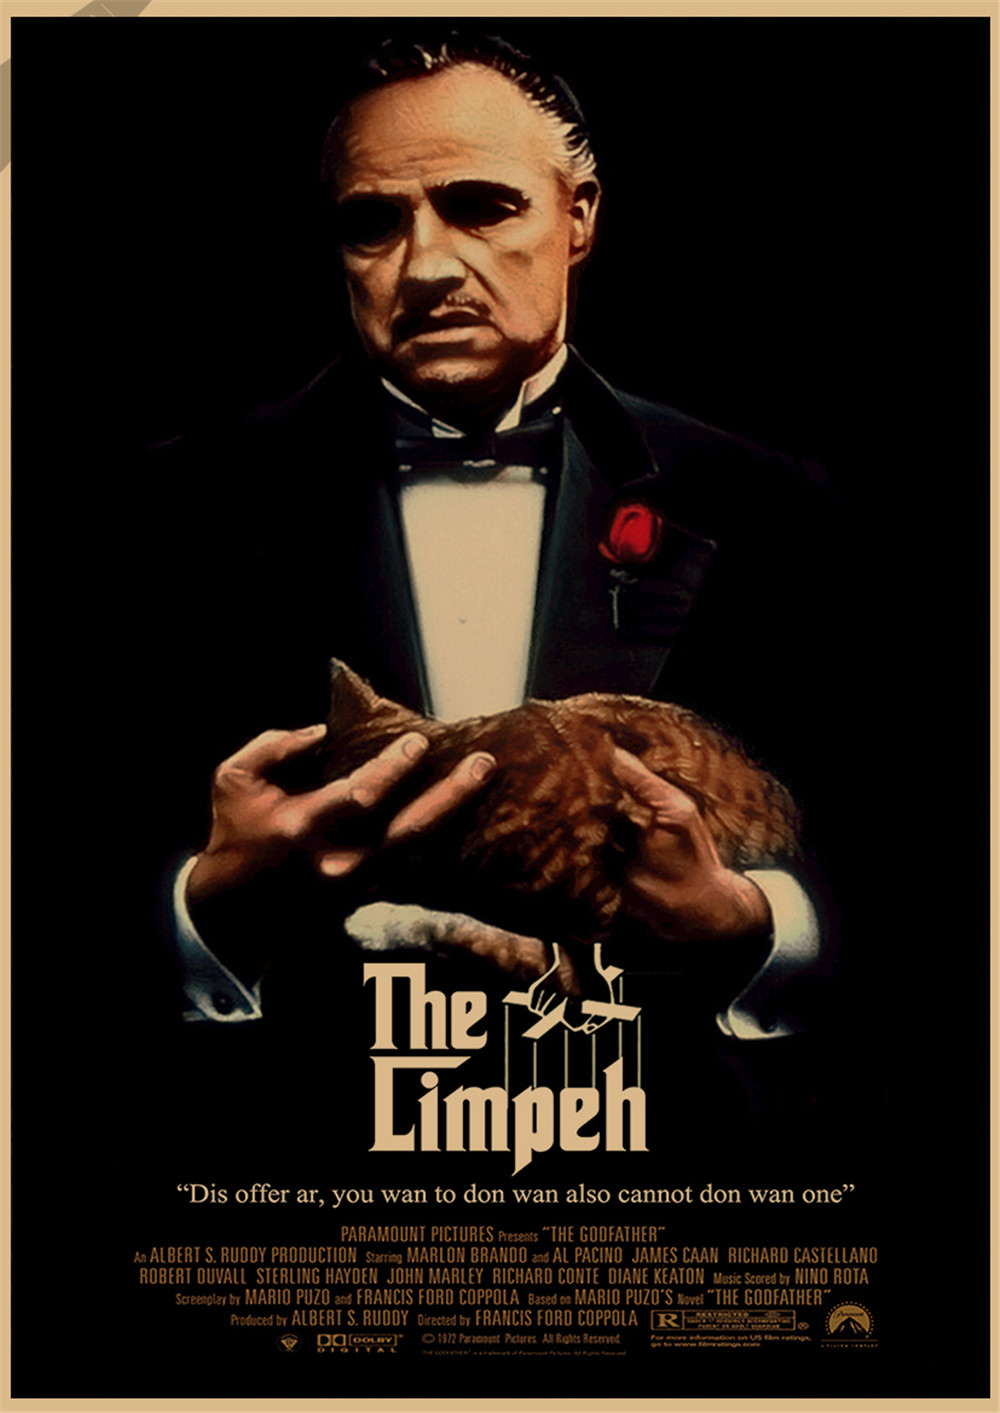 an analysis of the theme of organized crime in the movies the godfather and on the waterfront Director: francis ford coppola popularly viewed as one of the best american films ever made, the multi-generational crime saga the godfather is a touchstone of cinema: one of the most widely imitated, quoted, and lampooned movies of all time.